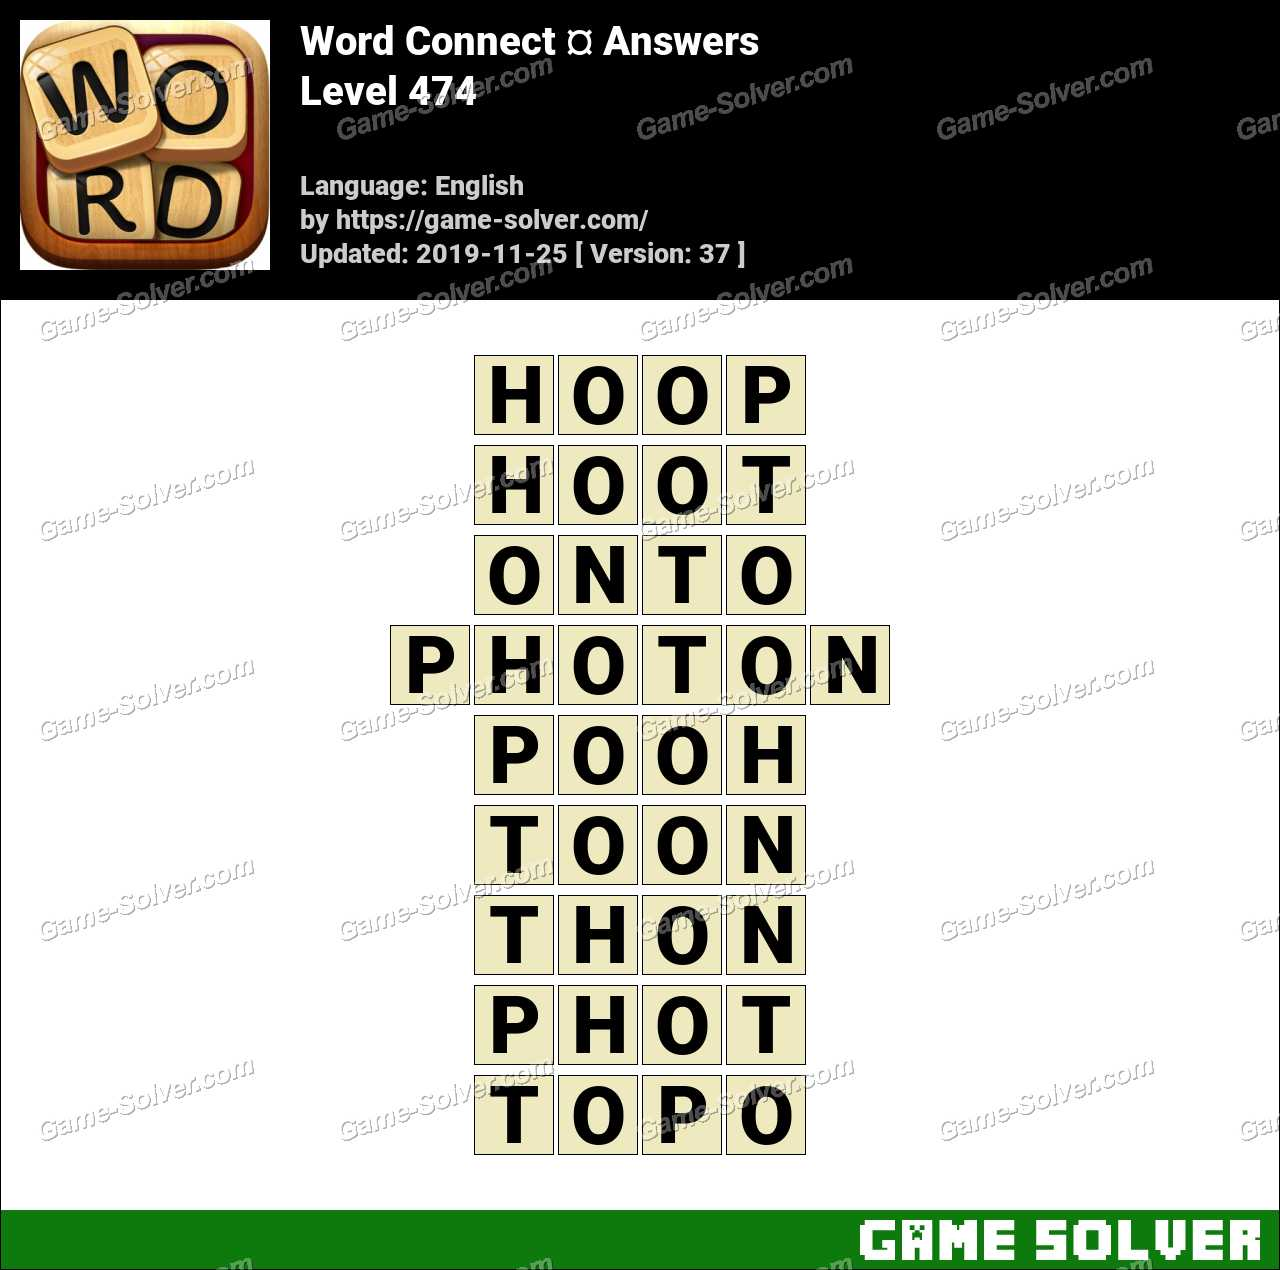 Word Connect Level 474 Answers